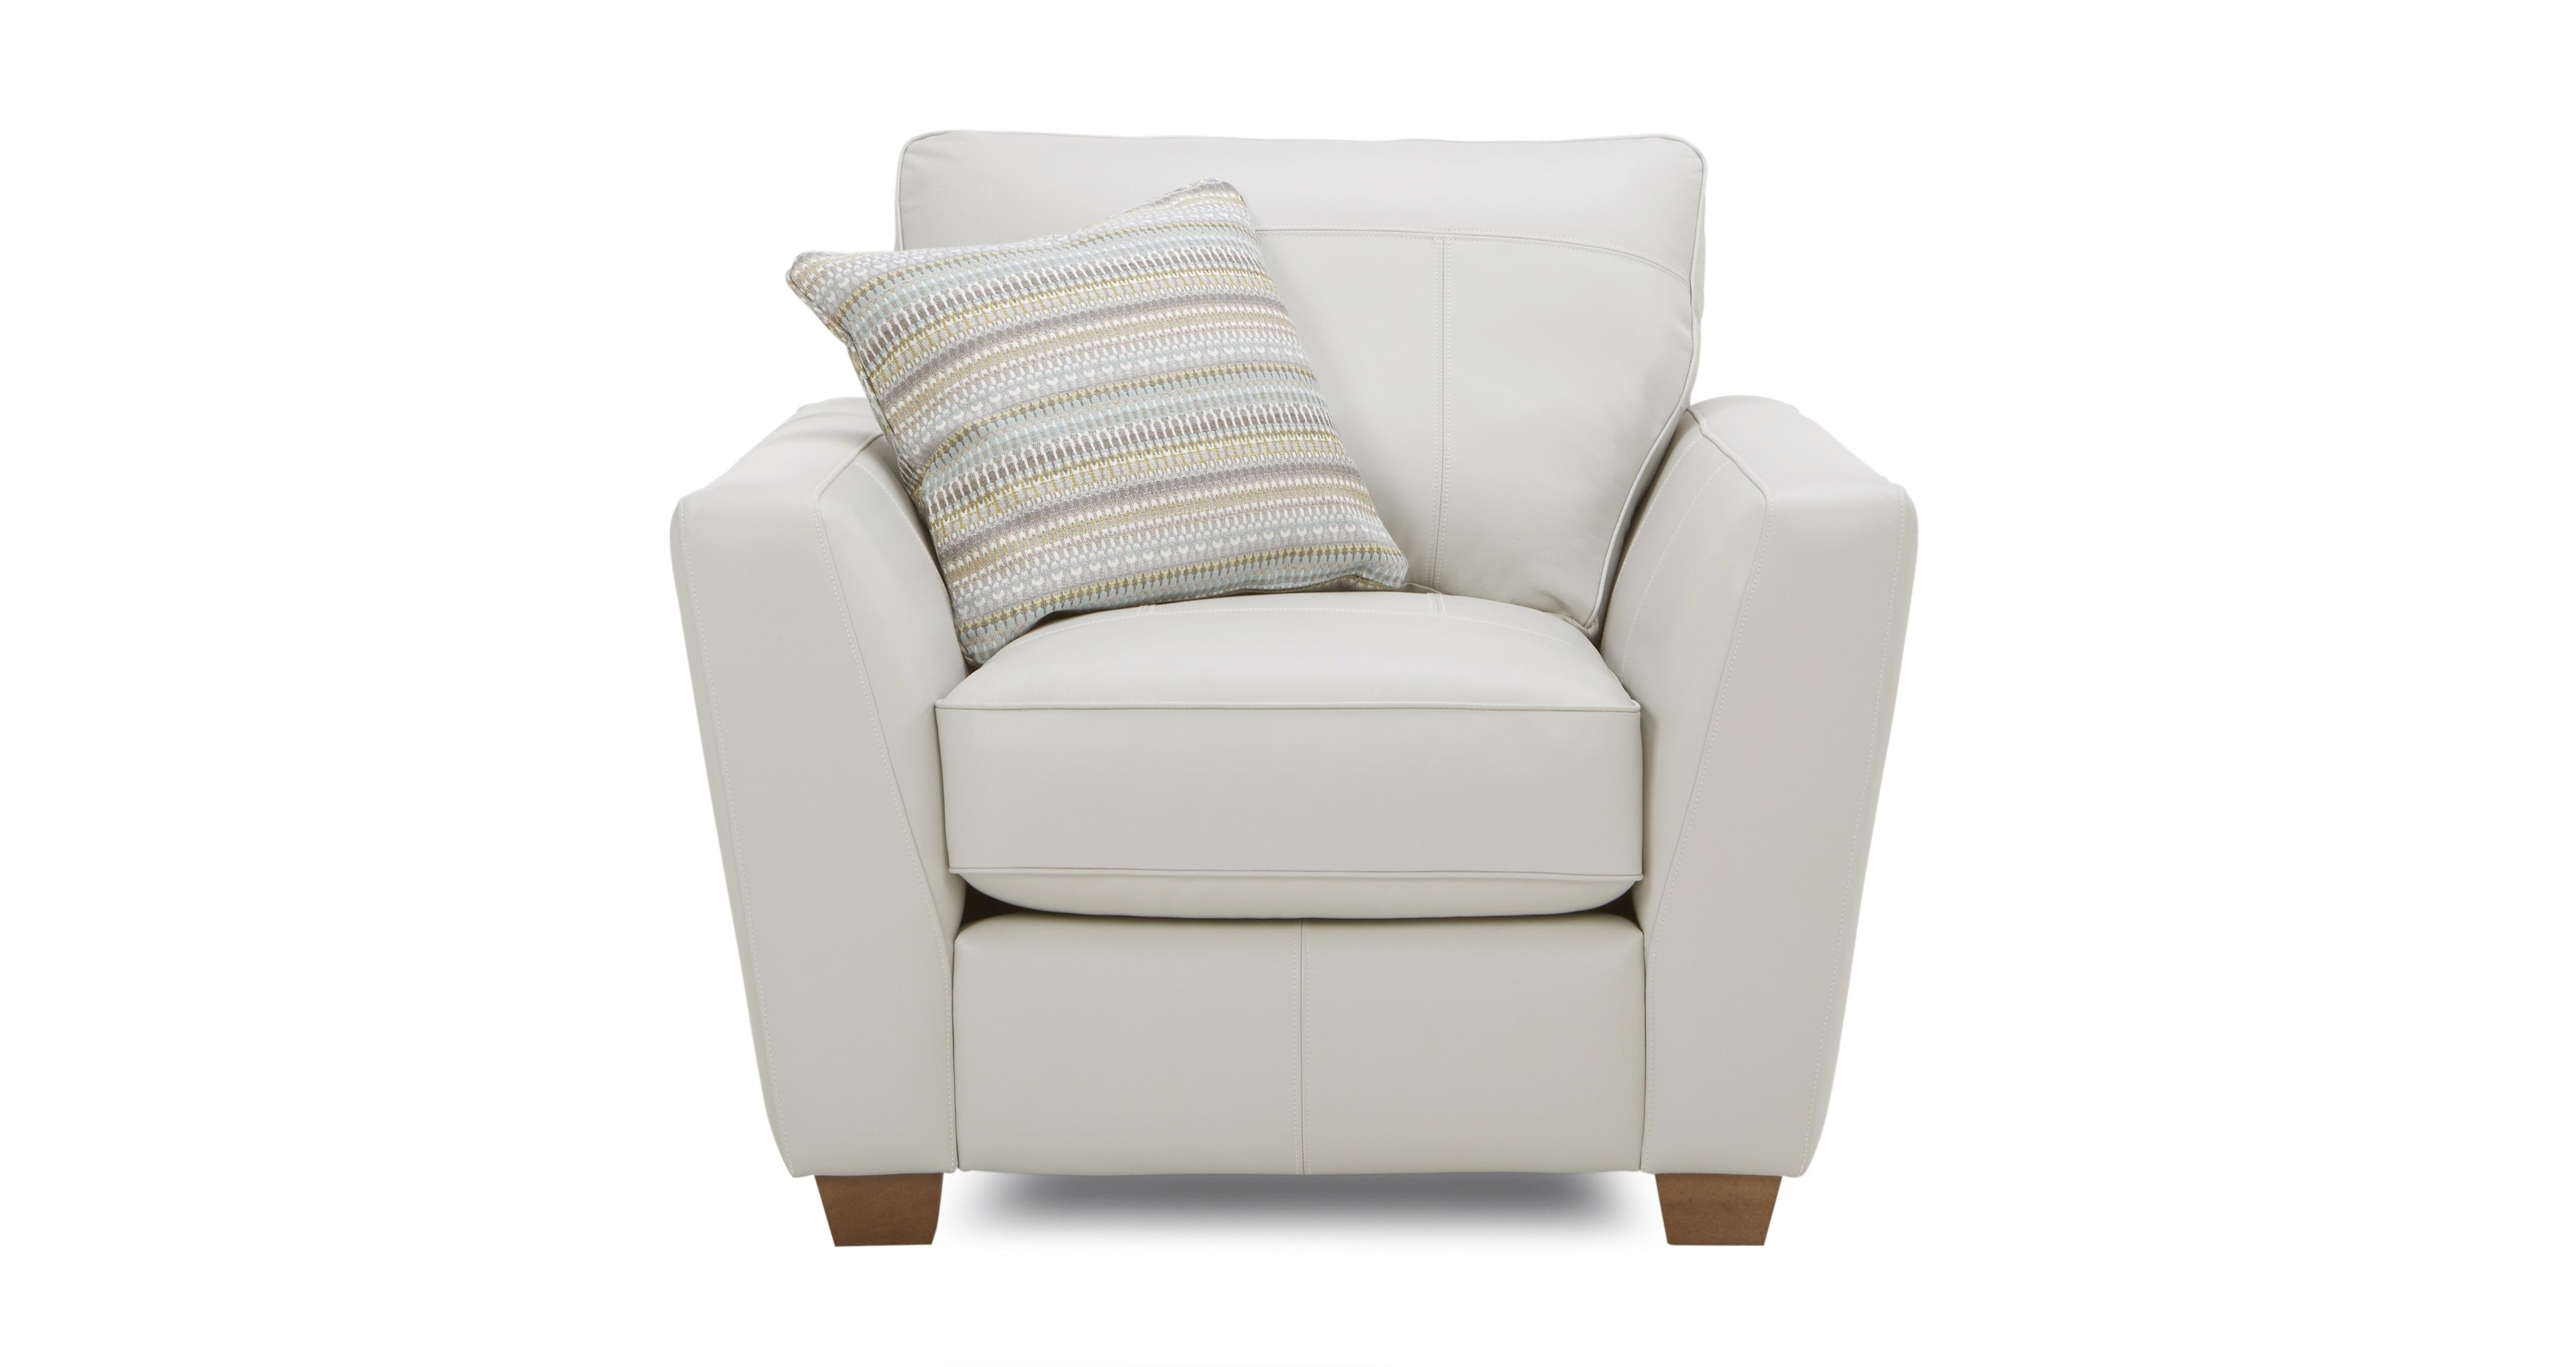 dfs sophia sofa reviews pull out bed set leather armchair